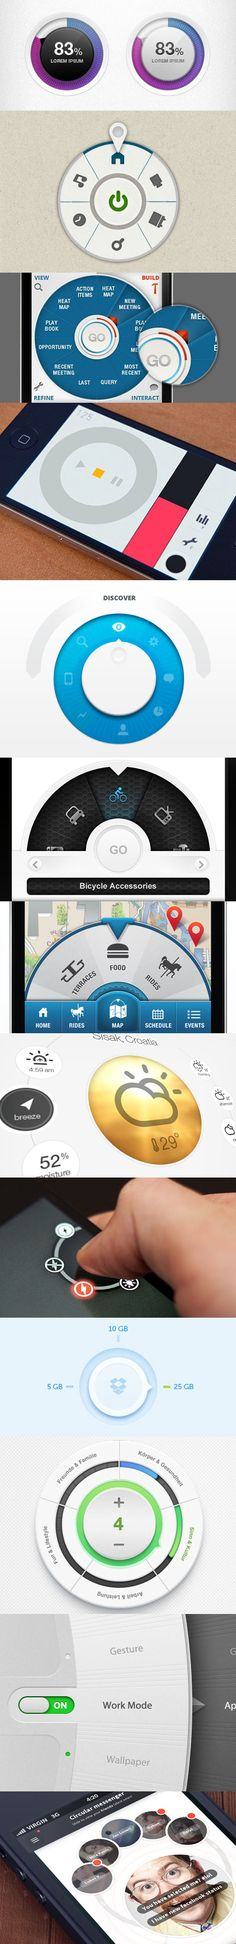 Eine Runde Sache – Mobile UI . Design Blog . Great White Ark . Social Media, Online, Internet Marketing Agentur, München Deutschland